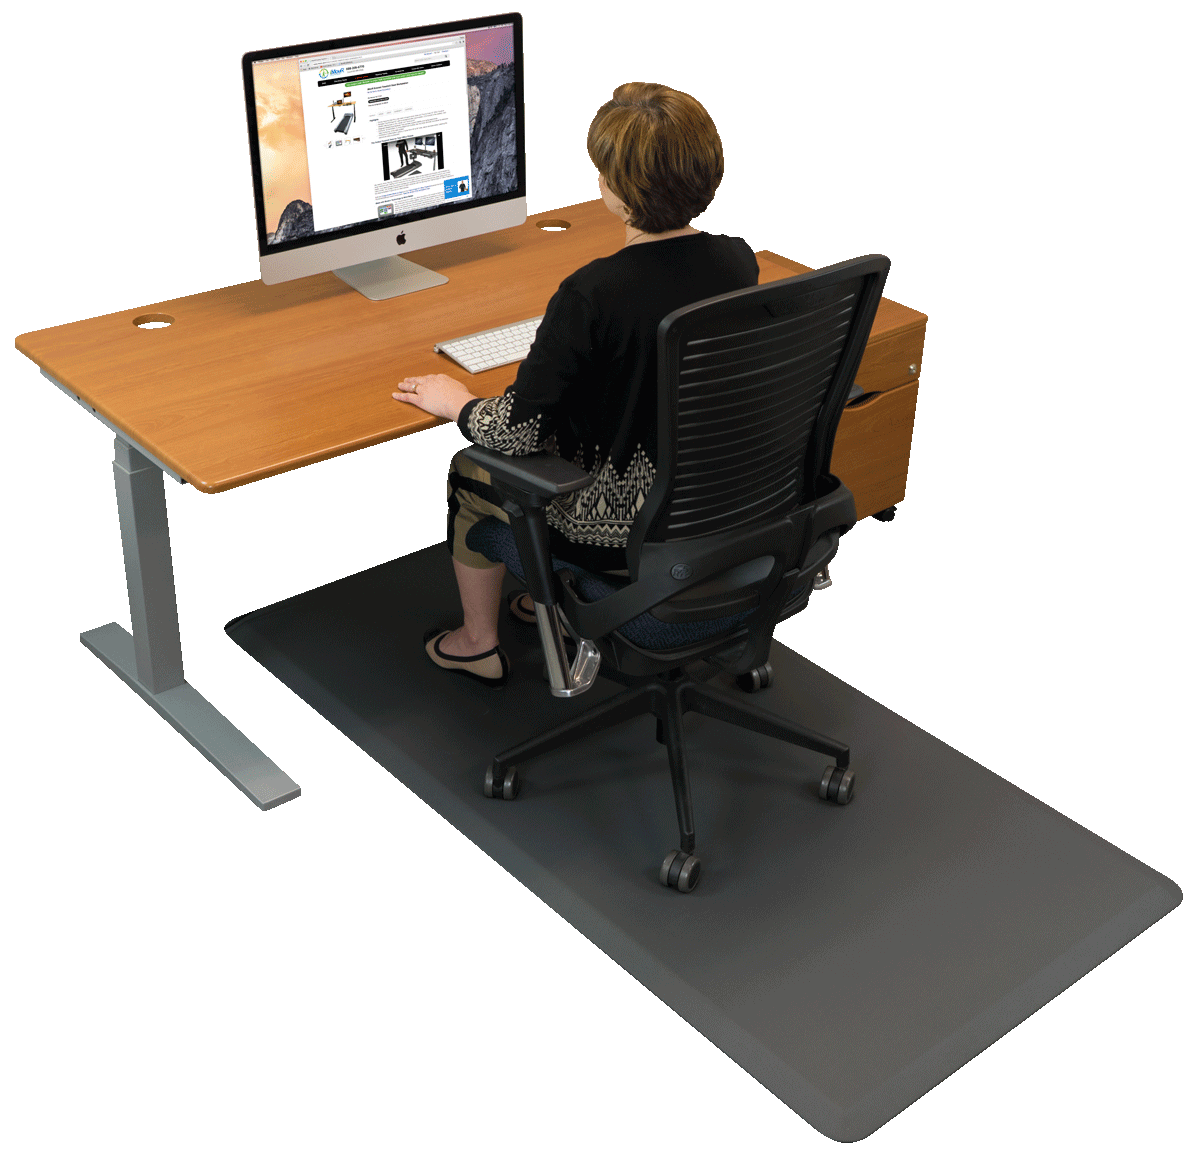 Buy Anti Fatigue Mats Best Mat For Standing Desks Imovr